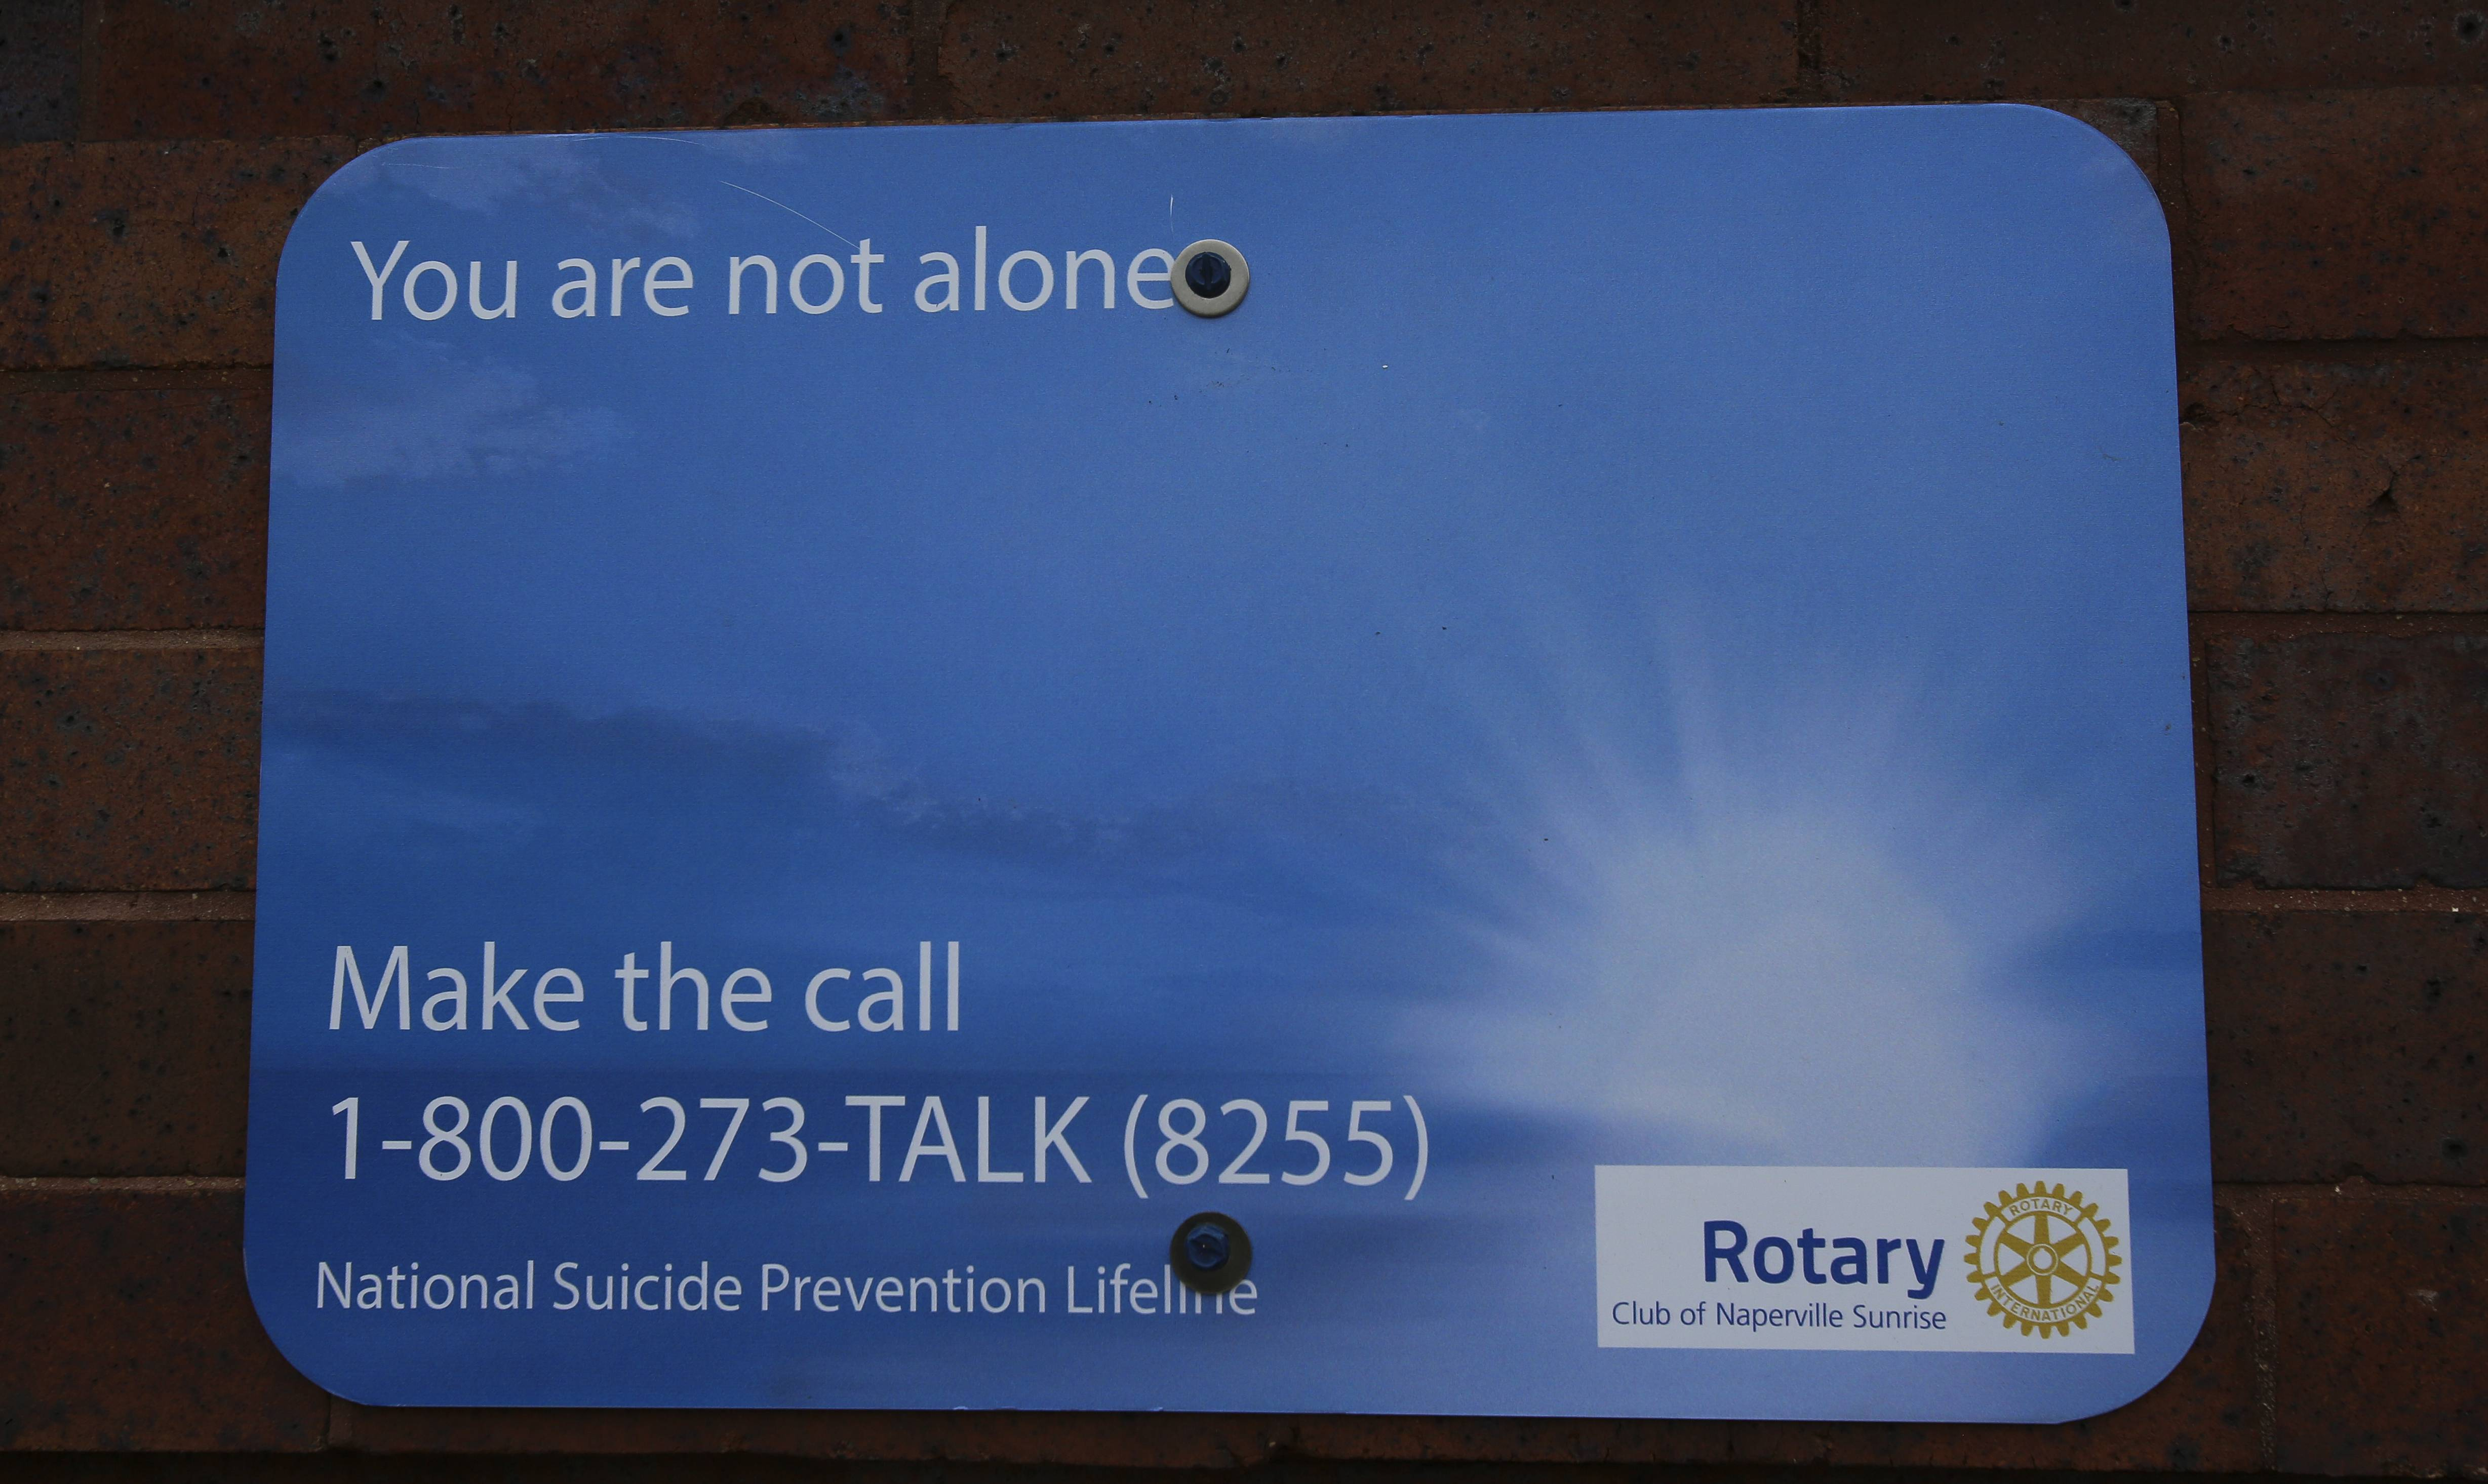 The Rotary Club of Naperville Sunrise sponsored these signs now posted at the 5th Avenue Metra station as a way to encourage people struggling with suicidal thoughts to seek help.